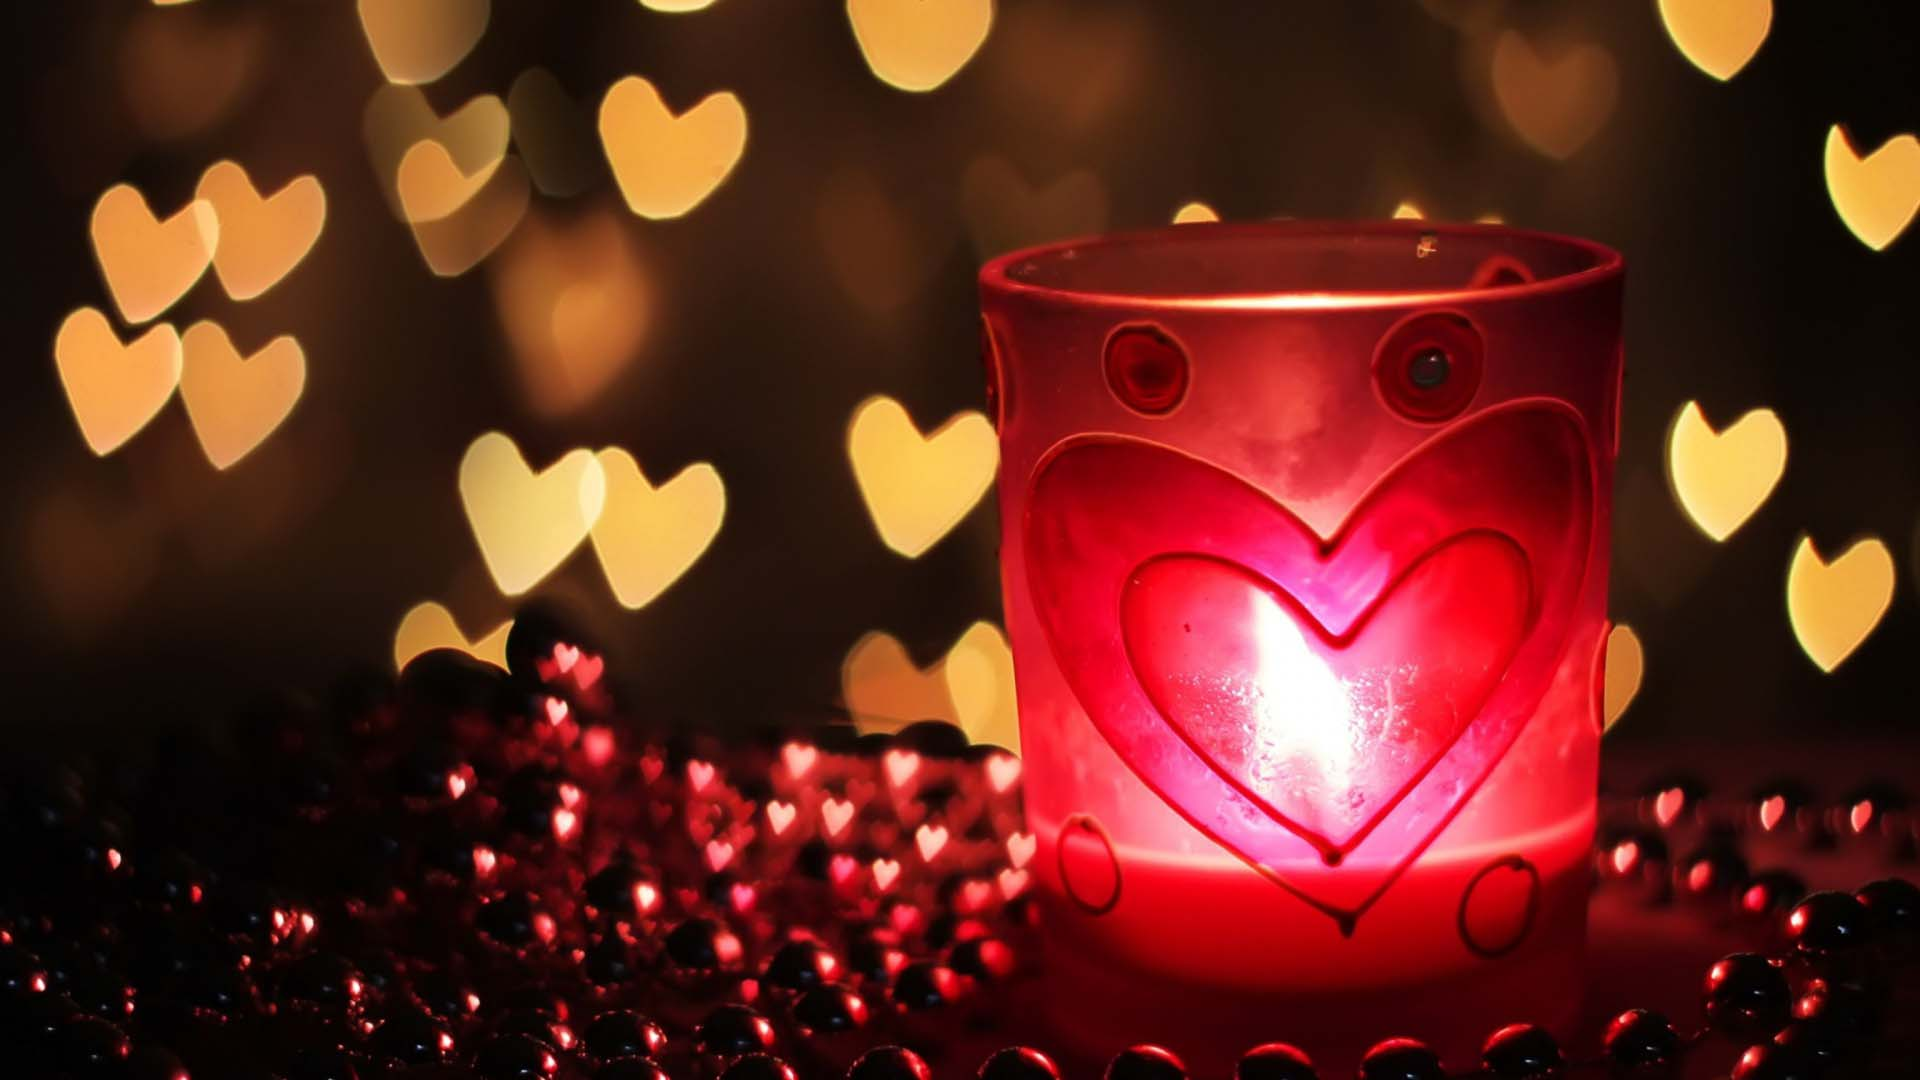 cute-girly-candle-love-wallpaper-hd